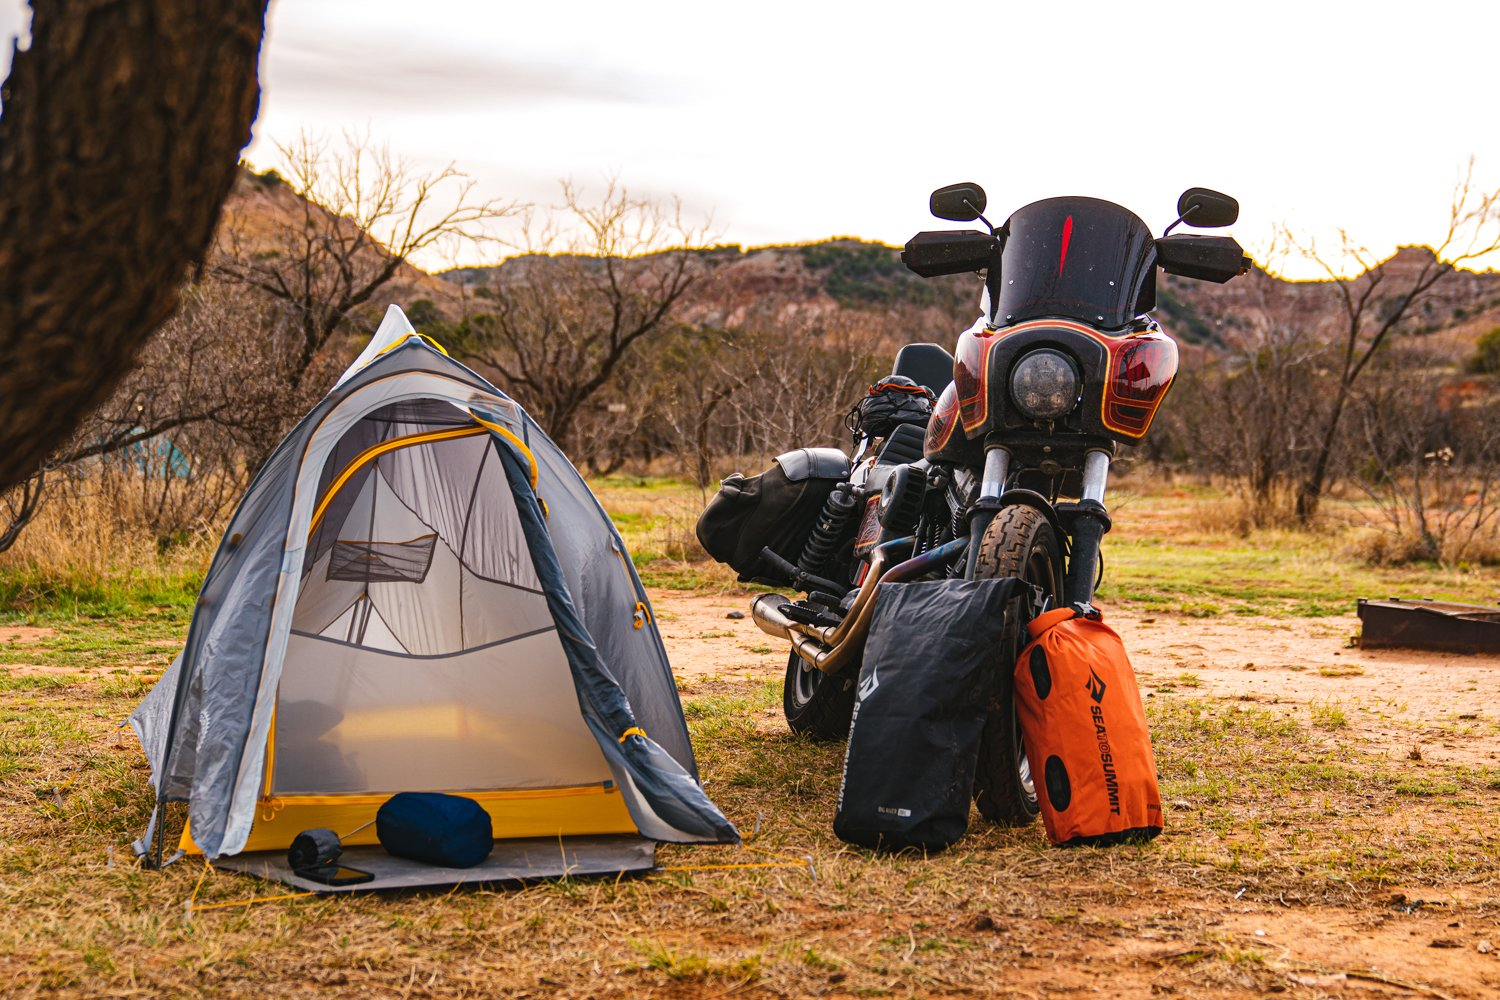 Big Agnes Fly Creek Bikepacking Tent – A Motorcycle Camping Review